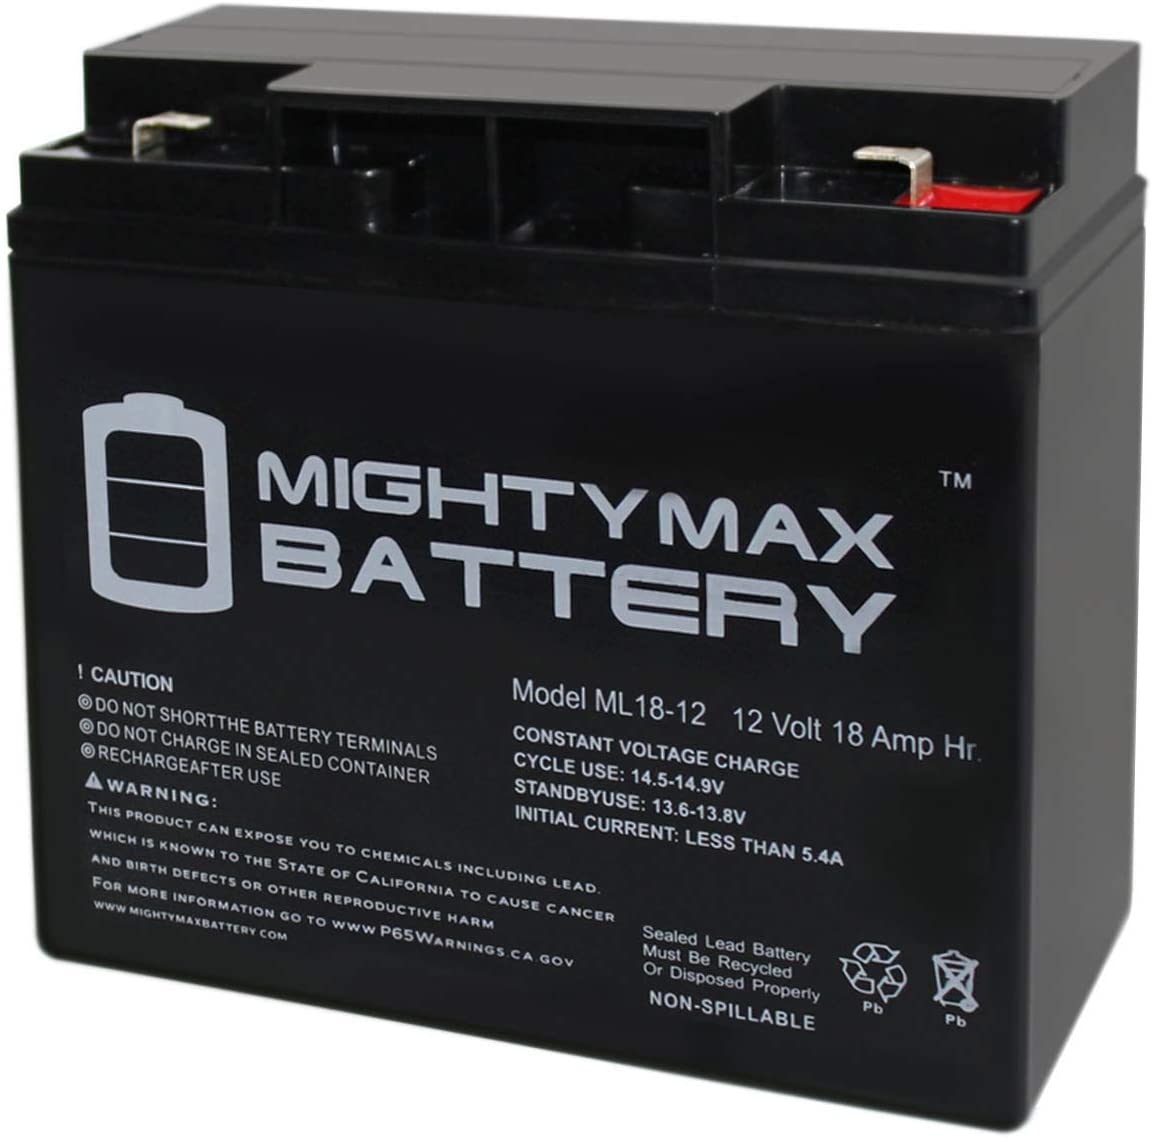 Mighty Max Battery 12V 18AH F2 Replacement Battery for DURA12-18F2 Brand Product